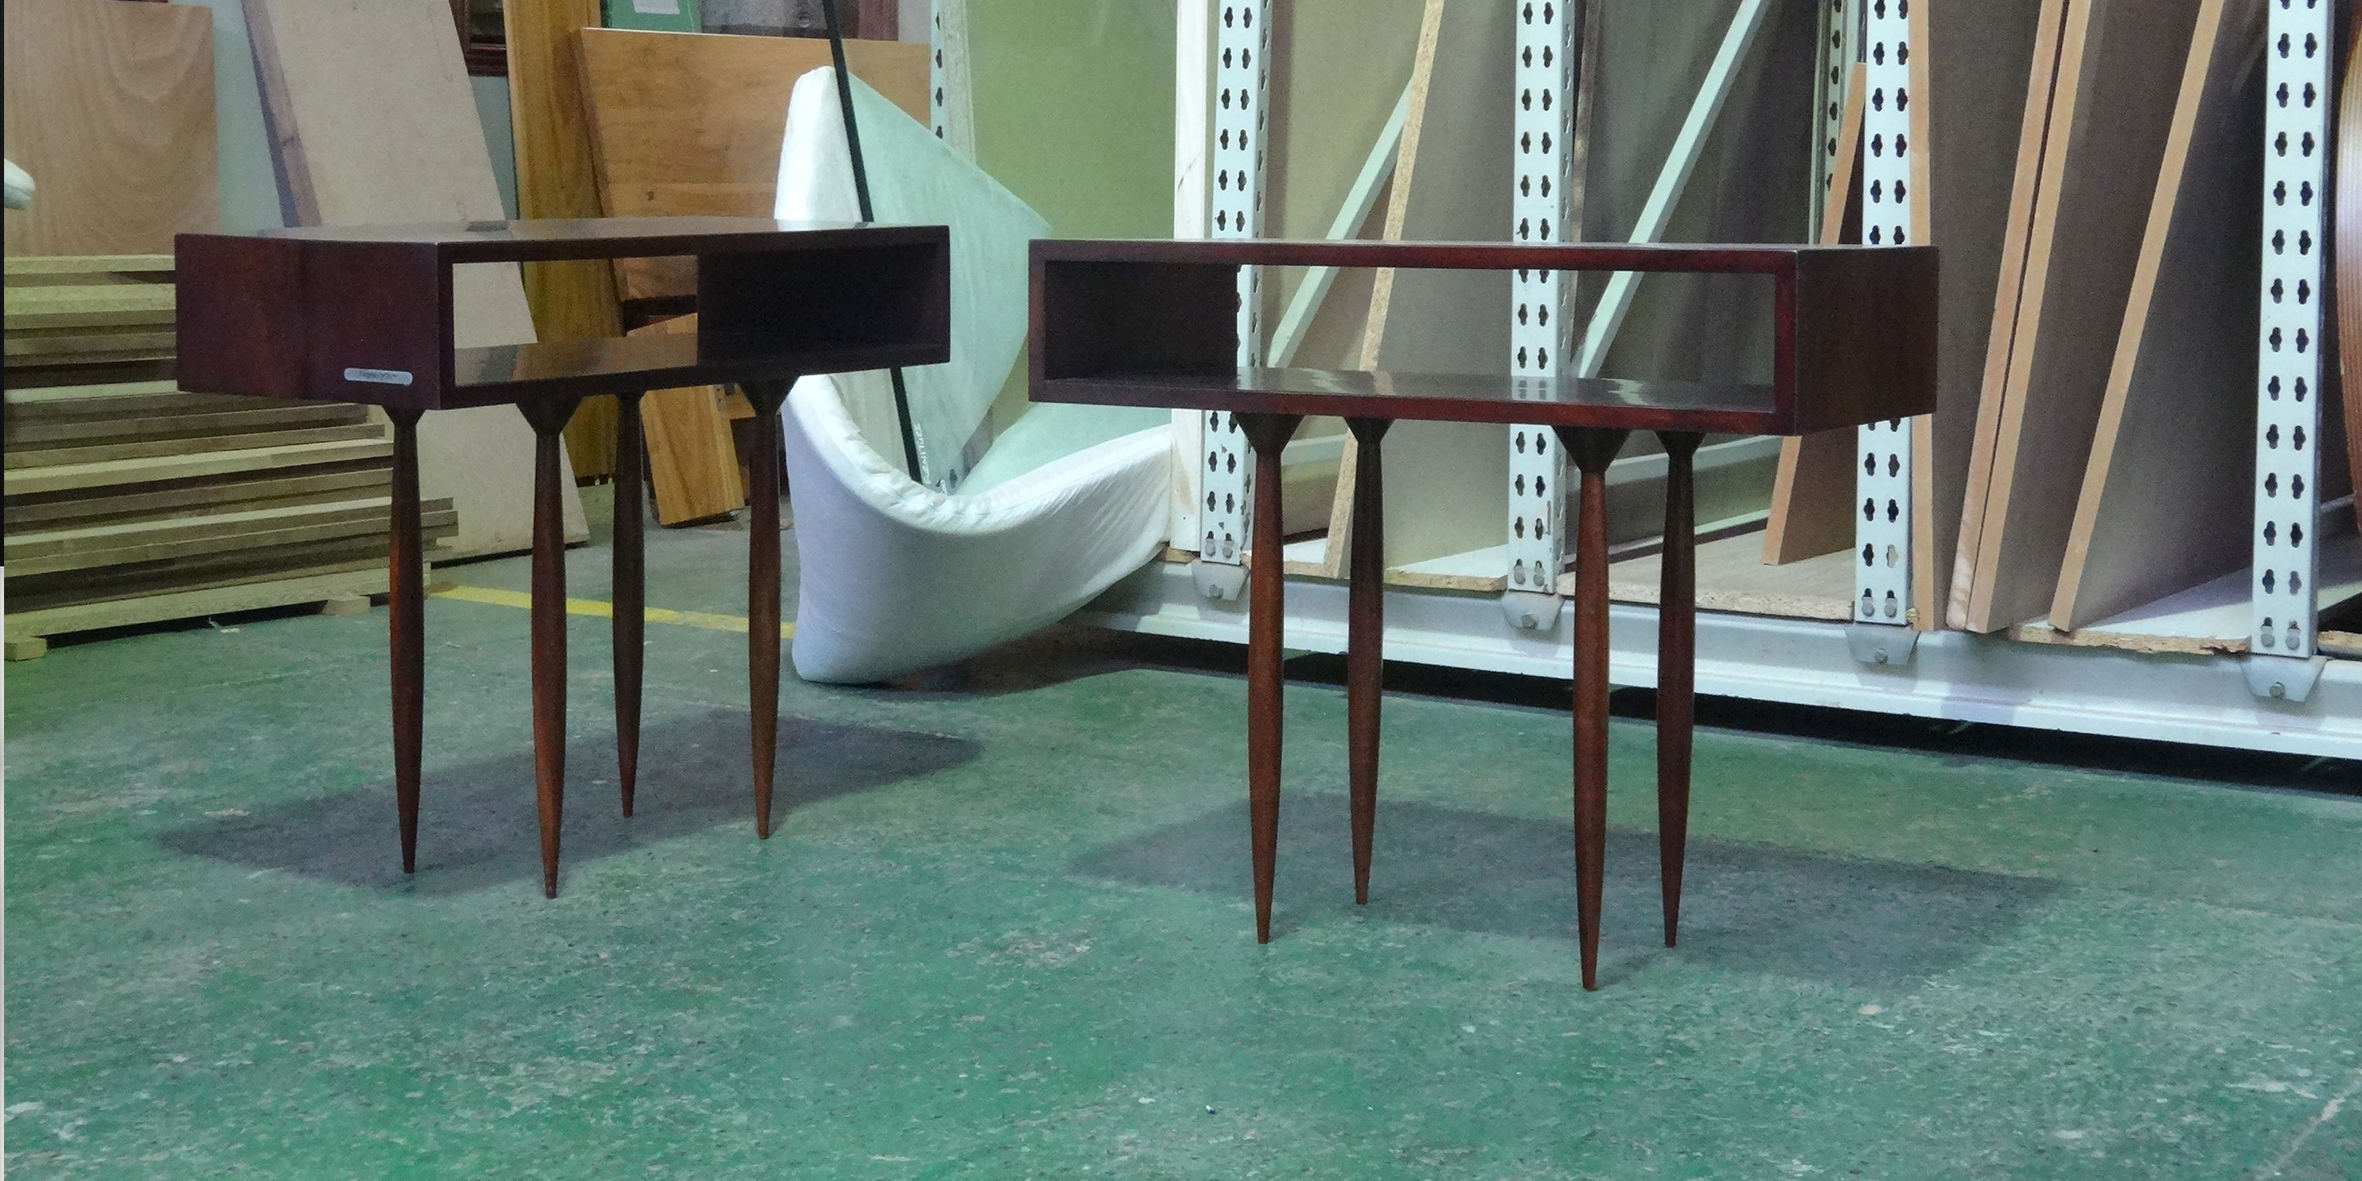 hotel jhb, children side tables, 700 l x 320 w x 600 h, mahogany